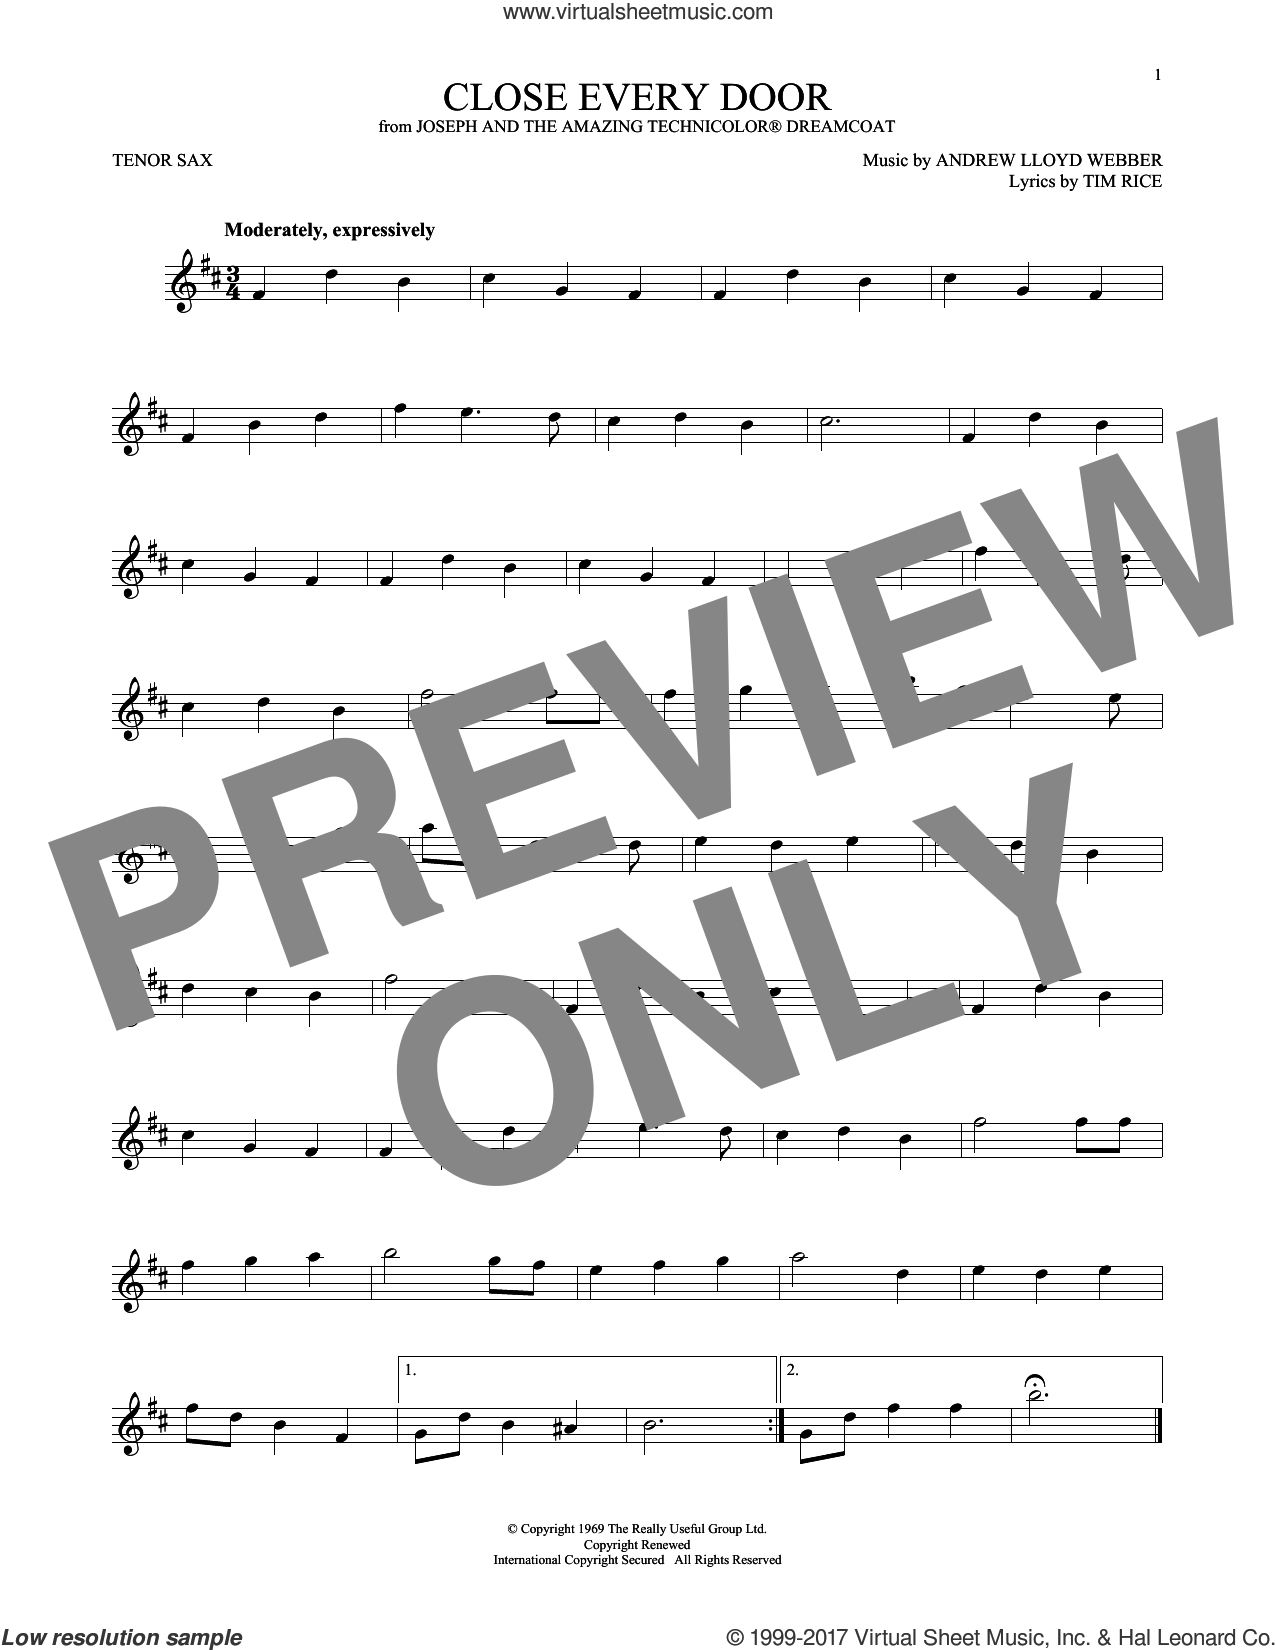 Close Every Door sheet music for tenor saxophone solo by Andrew Lloyd Webber and Tim Rice, intermediate skill level